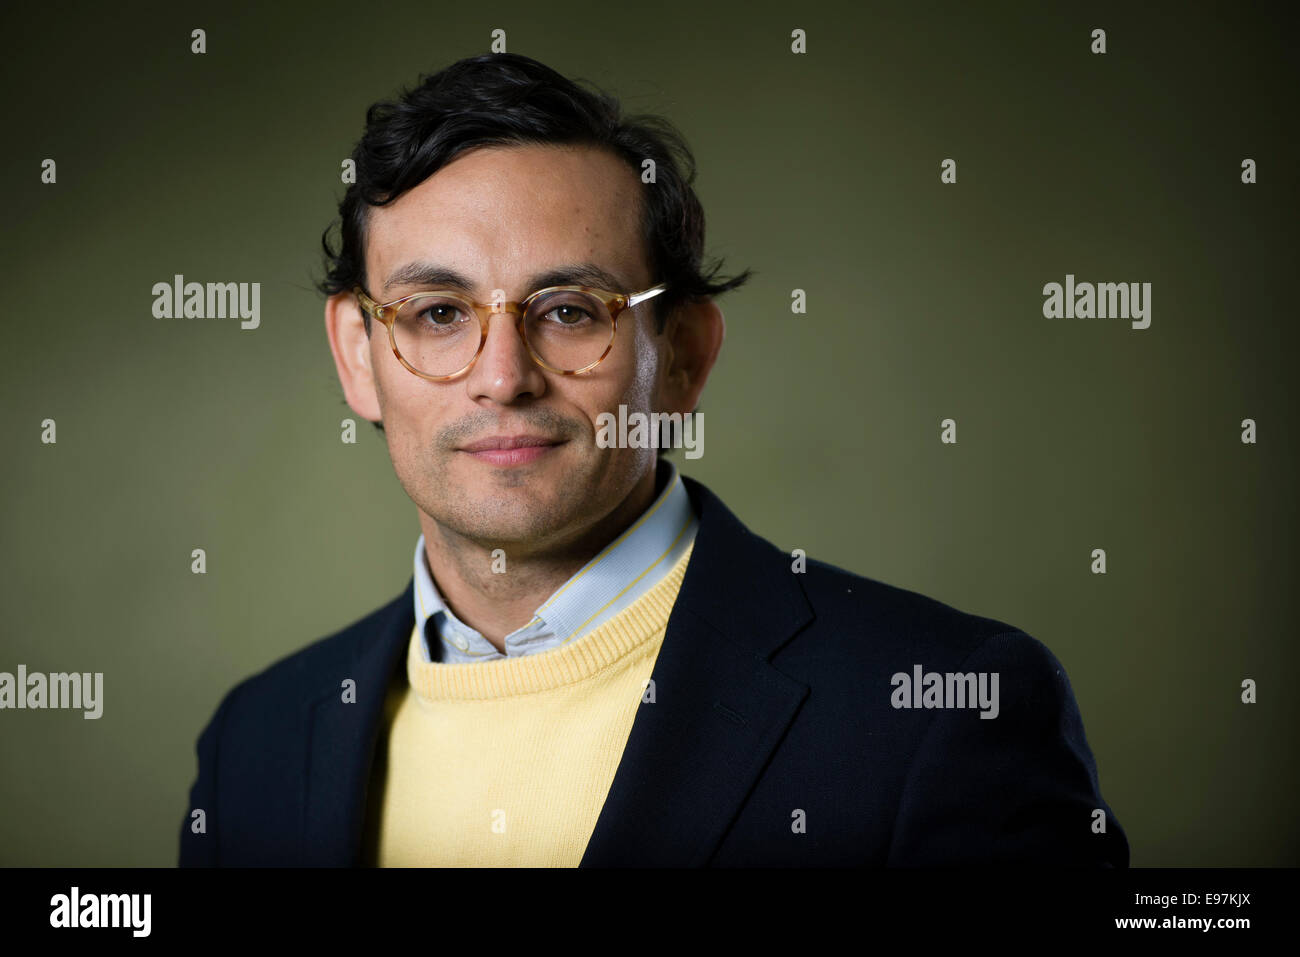 British writer Simon Van Booy appears at the Edinburgh International Book Festival. - Stock Image